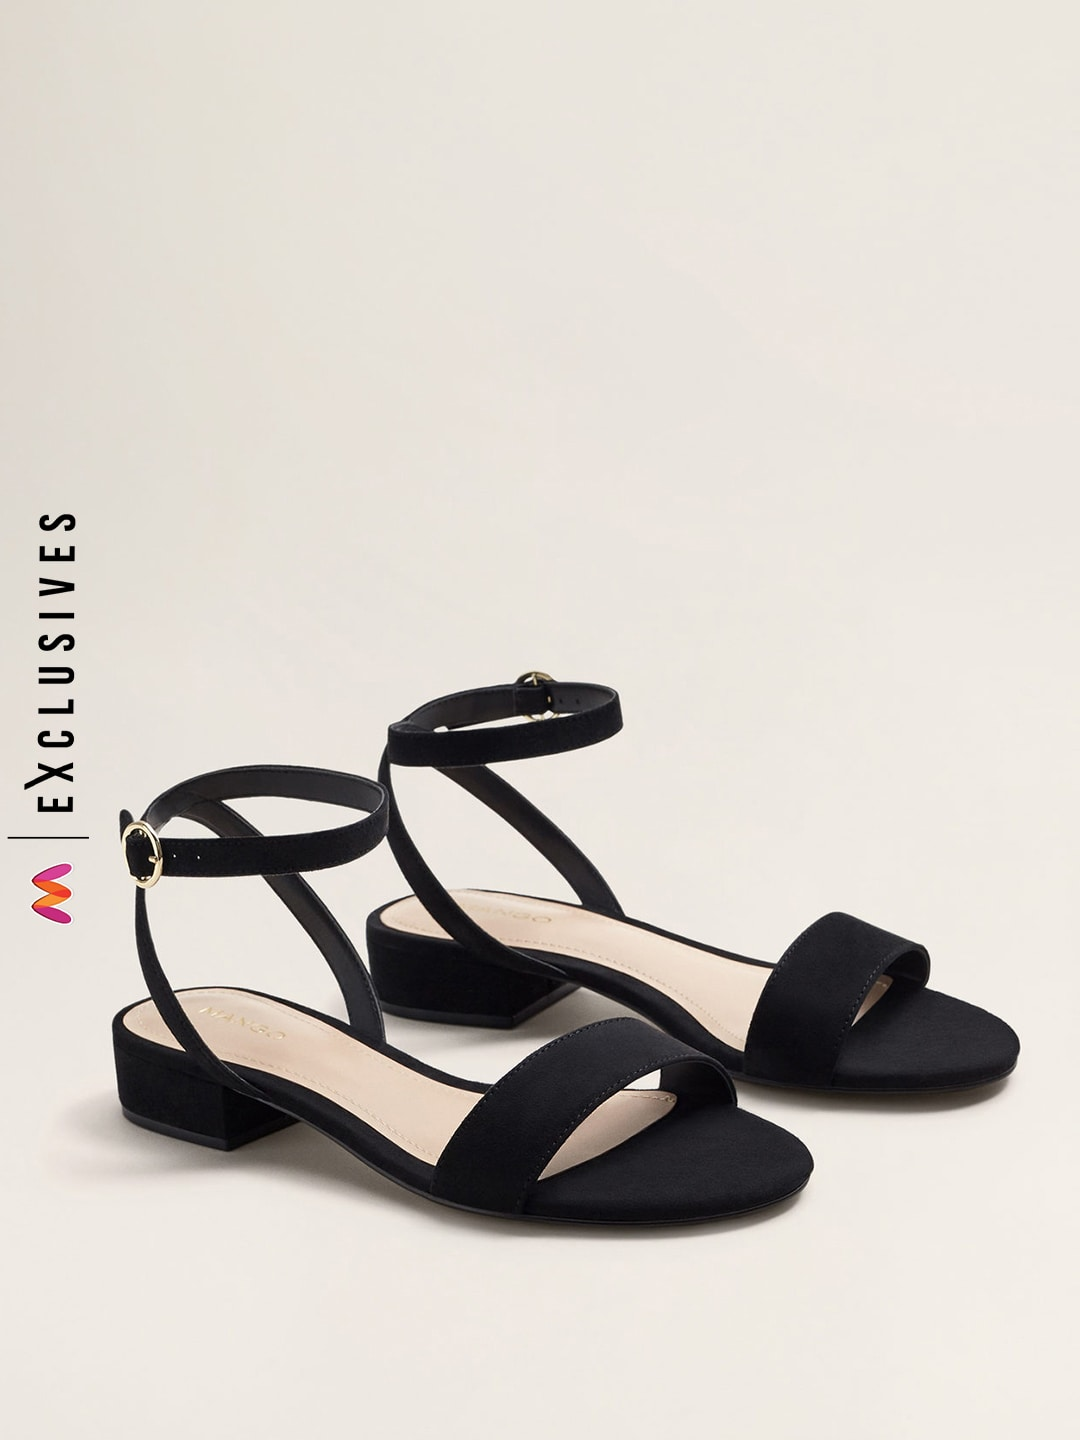 MANGO Women Black Solid Heels